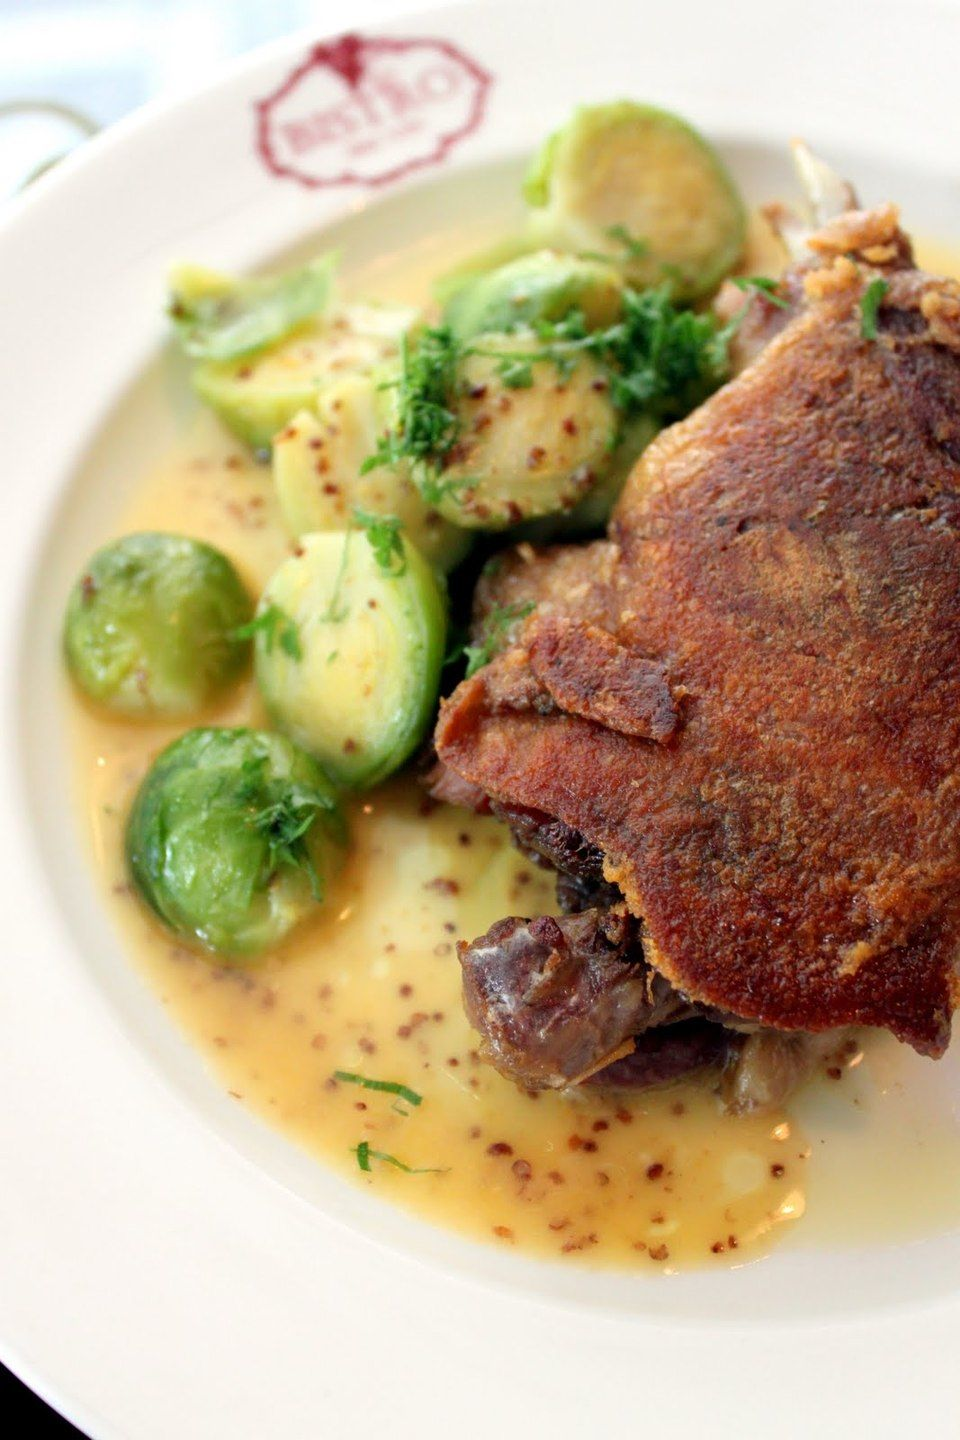 Duck confit and roasted brussels sprouts by chef hayden